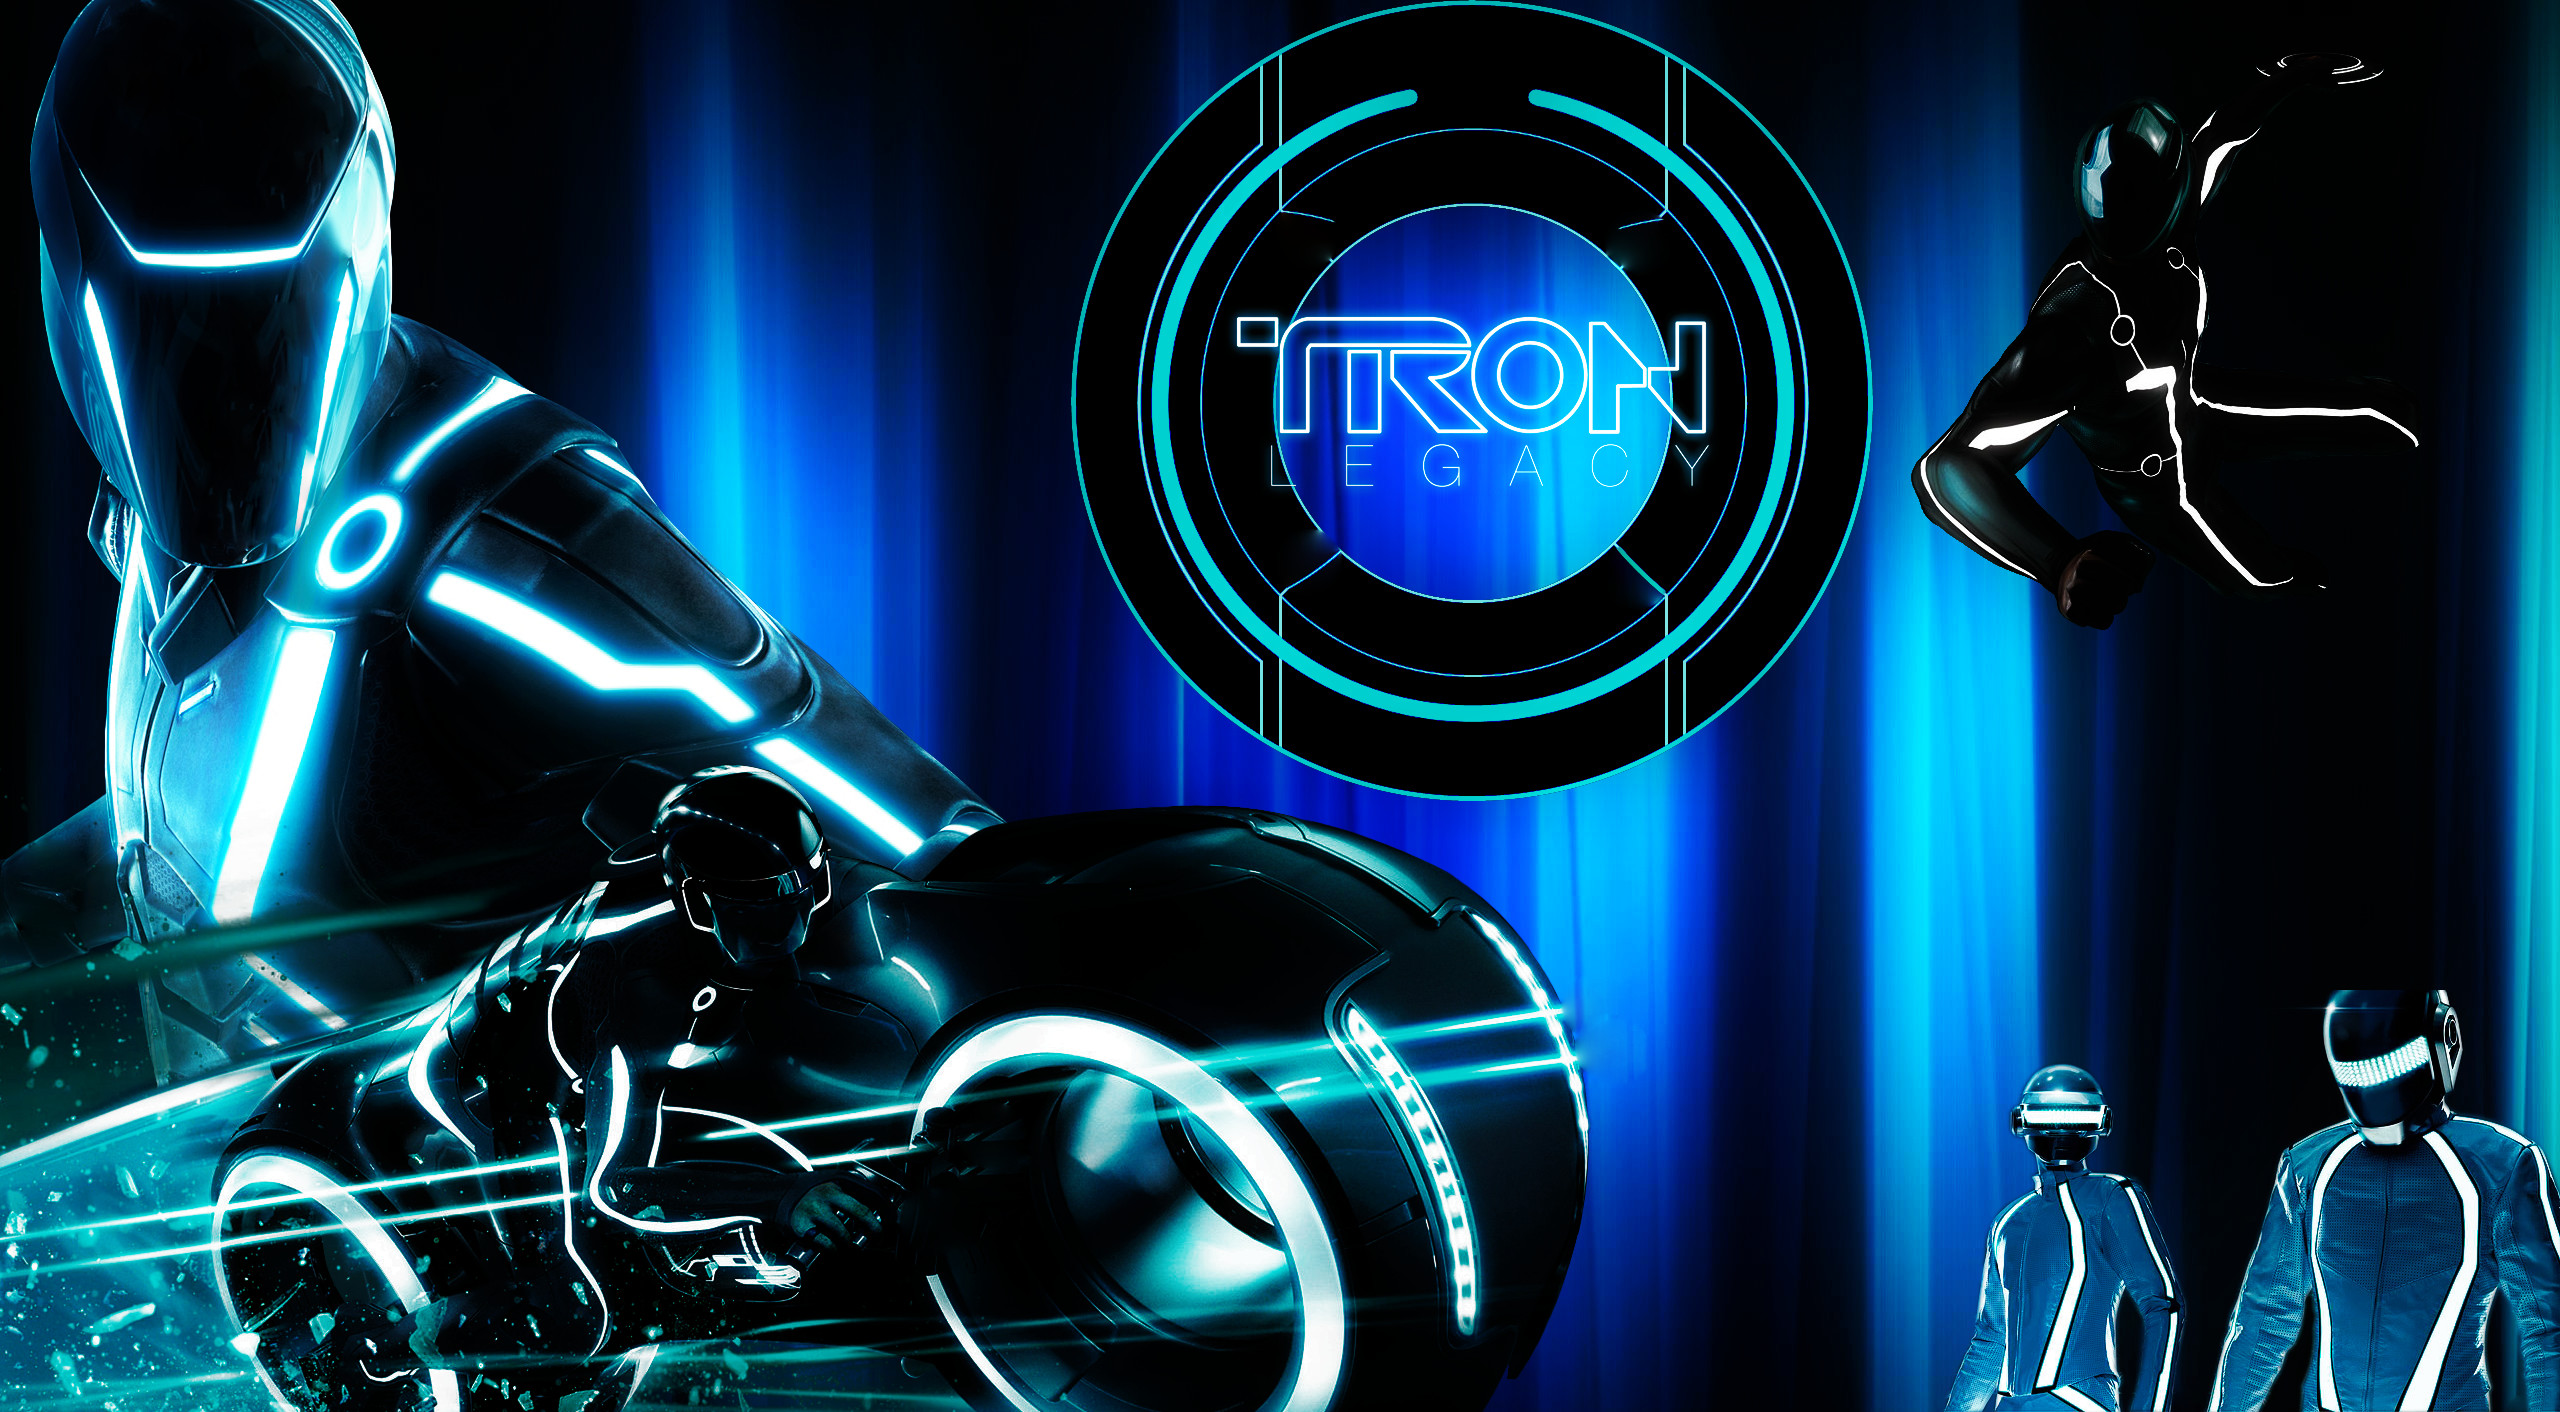 2560x1412 imperator-antea 10 3 Tron Legacy-Tron Wallpaper by TheRenegade01